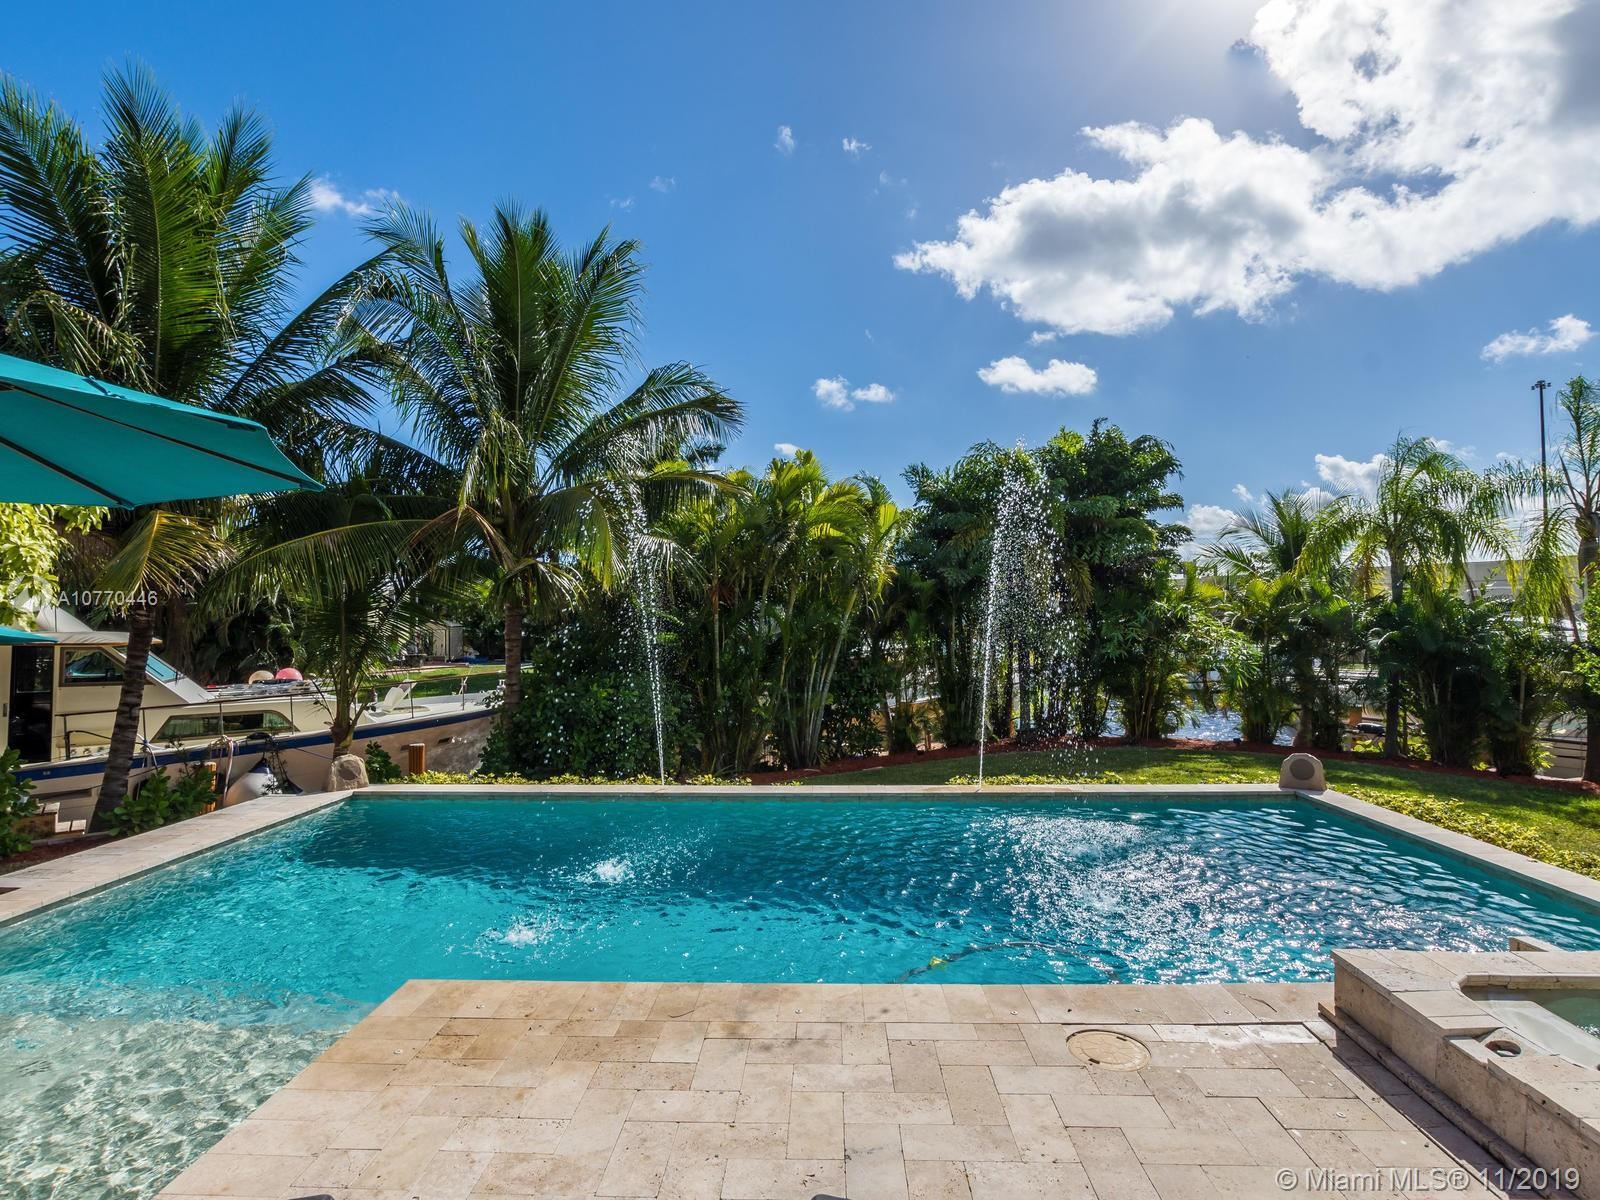 A rare point lot featuring 150 foot waterfront, 30/50A electric and water on a canal and New River, ocean access and no fixed bridges. Park up to 3 large vessels or even a catamaran right in front of your 3 bedroom 2 bath split level home! Kitchen features quartz countertops, soaring ceilings, impact windows throughout with hardwood and terrazzo flooring. Enjoy the newer travertine patio overlooking a custom heated pool and spa, plenty outdoor seating with incredible privacy. Side access allows for ample parking. Lush tropical landscaping, with mature fruit trees on one of the largest lots in Lauderdale Isles is the epitome of Florida's lifestyle. hurry, this won't last!